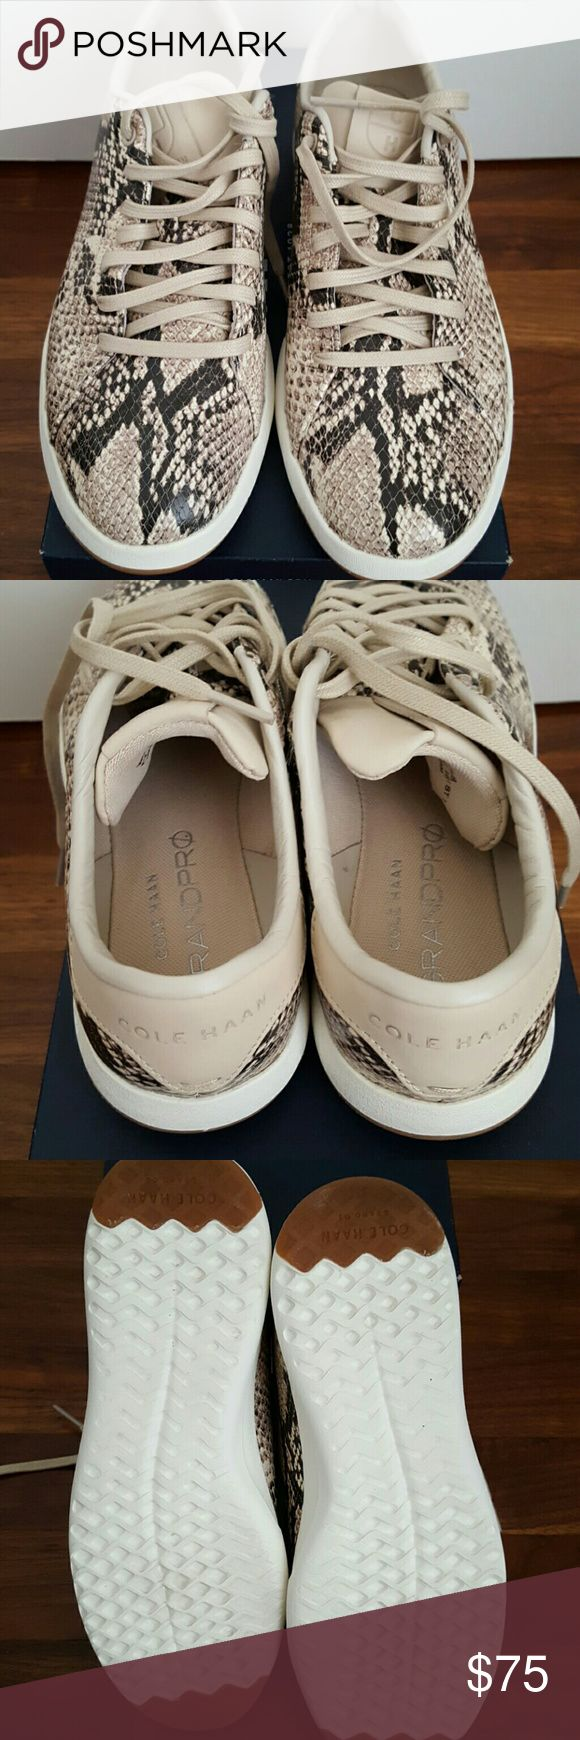 Cole Haan Grandpro Tennis Sneaker in Roccia Snake Snake print leather. Rubber pods in heel and forfoot for traction. I only used these sneakers once. They come in excellent condition. Cole Haan Shoes Sneakers